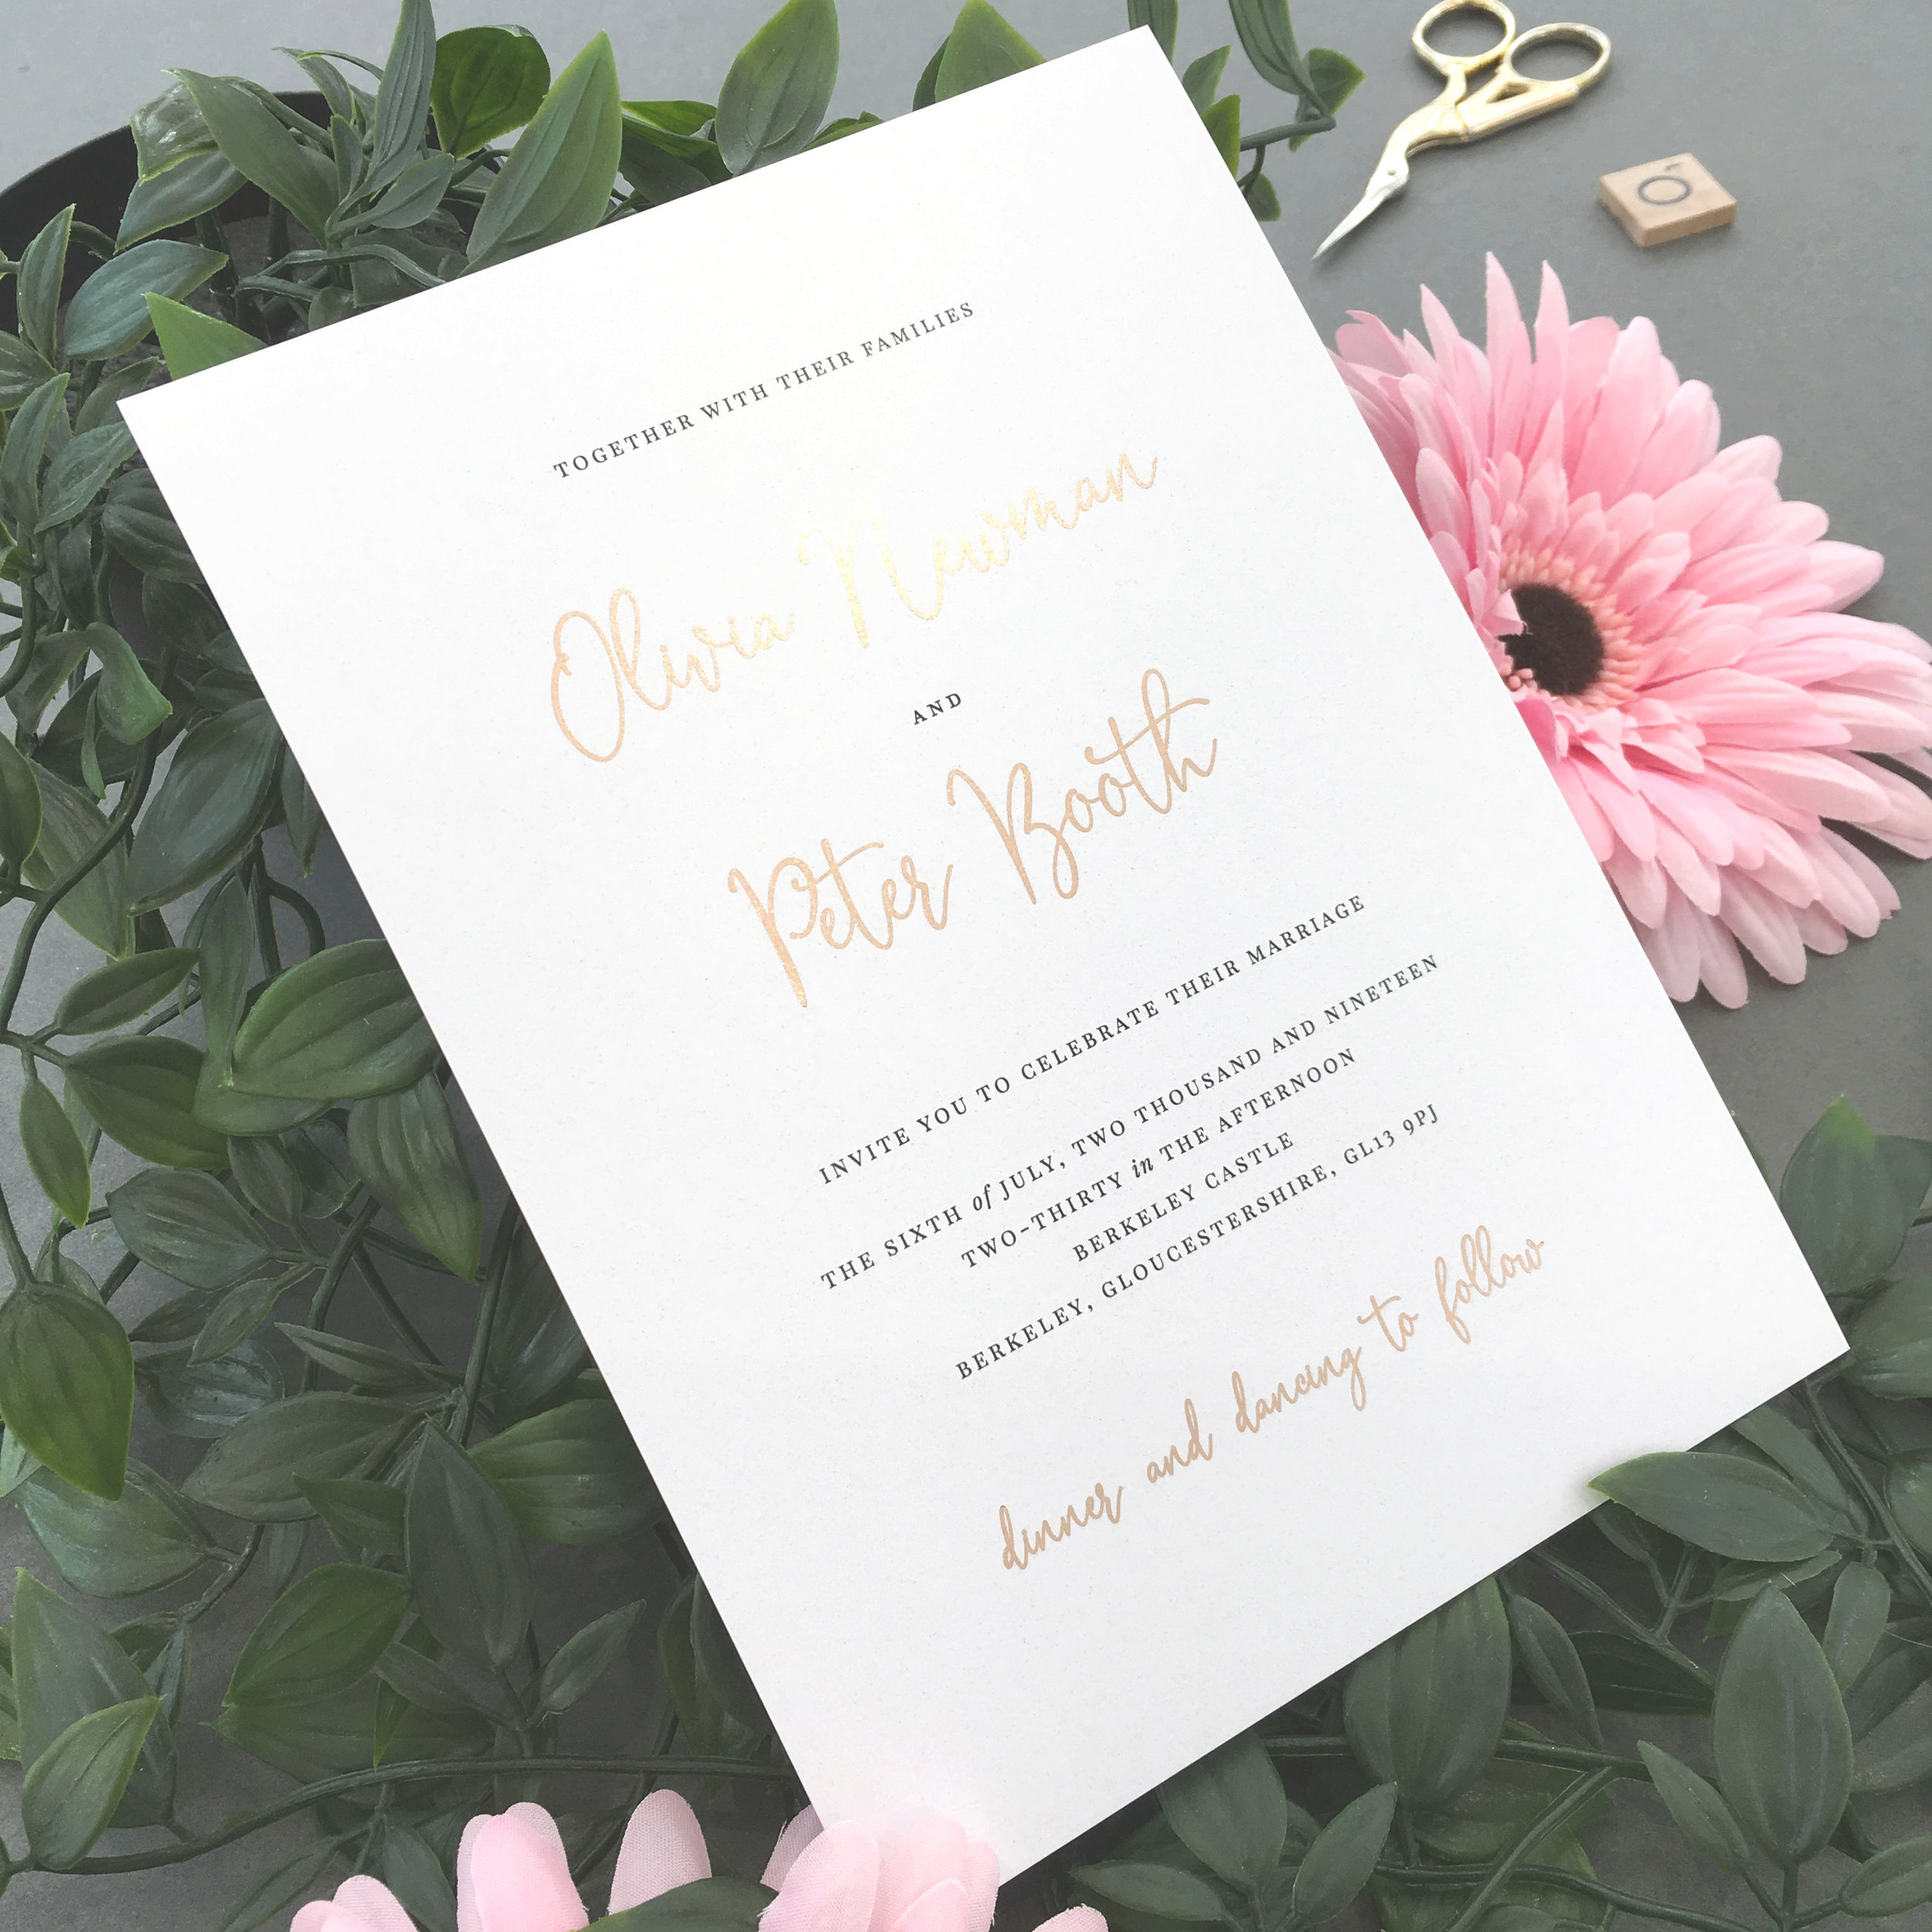 Finchley - Rose Gold Foiled Invite.jpg